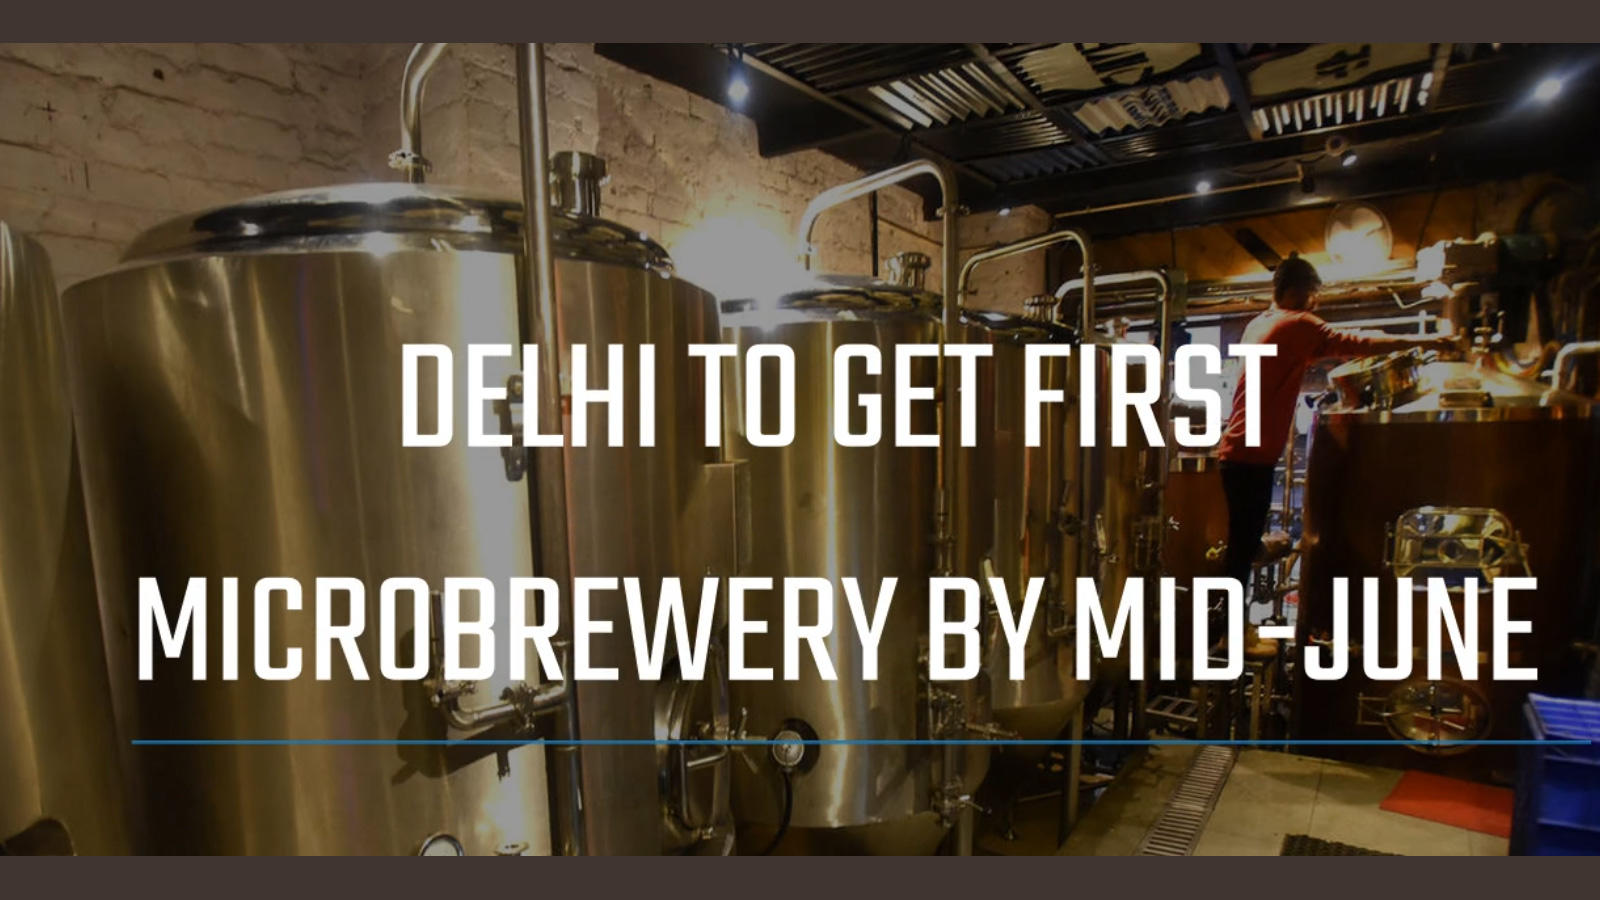 first-microbrewery-in-delhi-by-mid-june